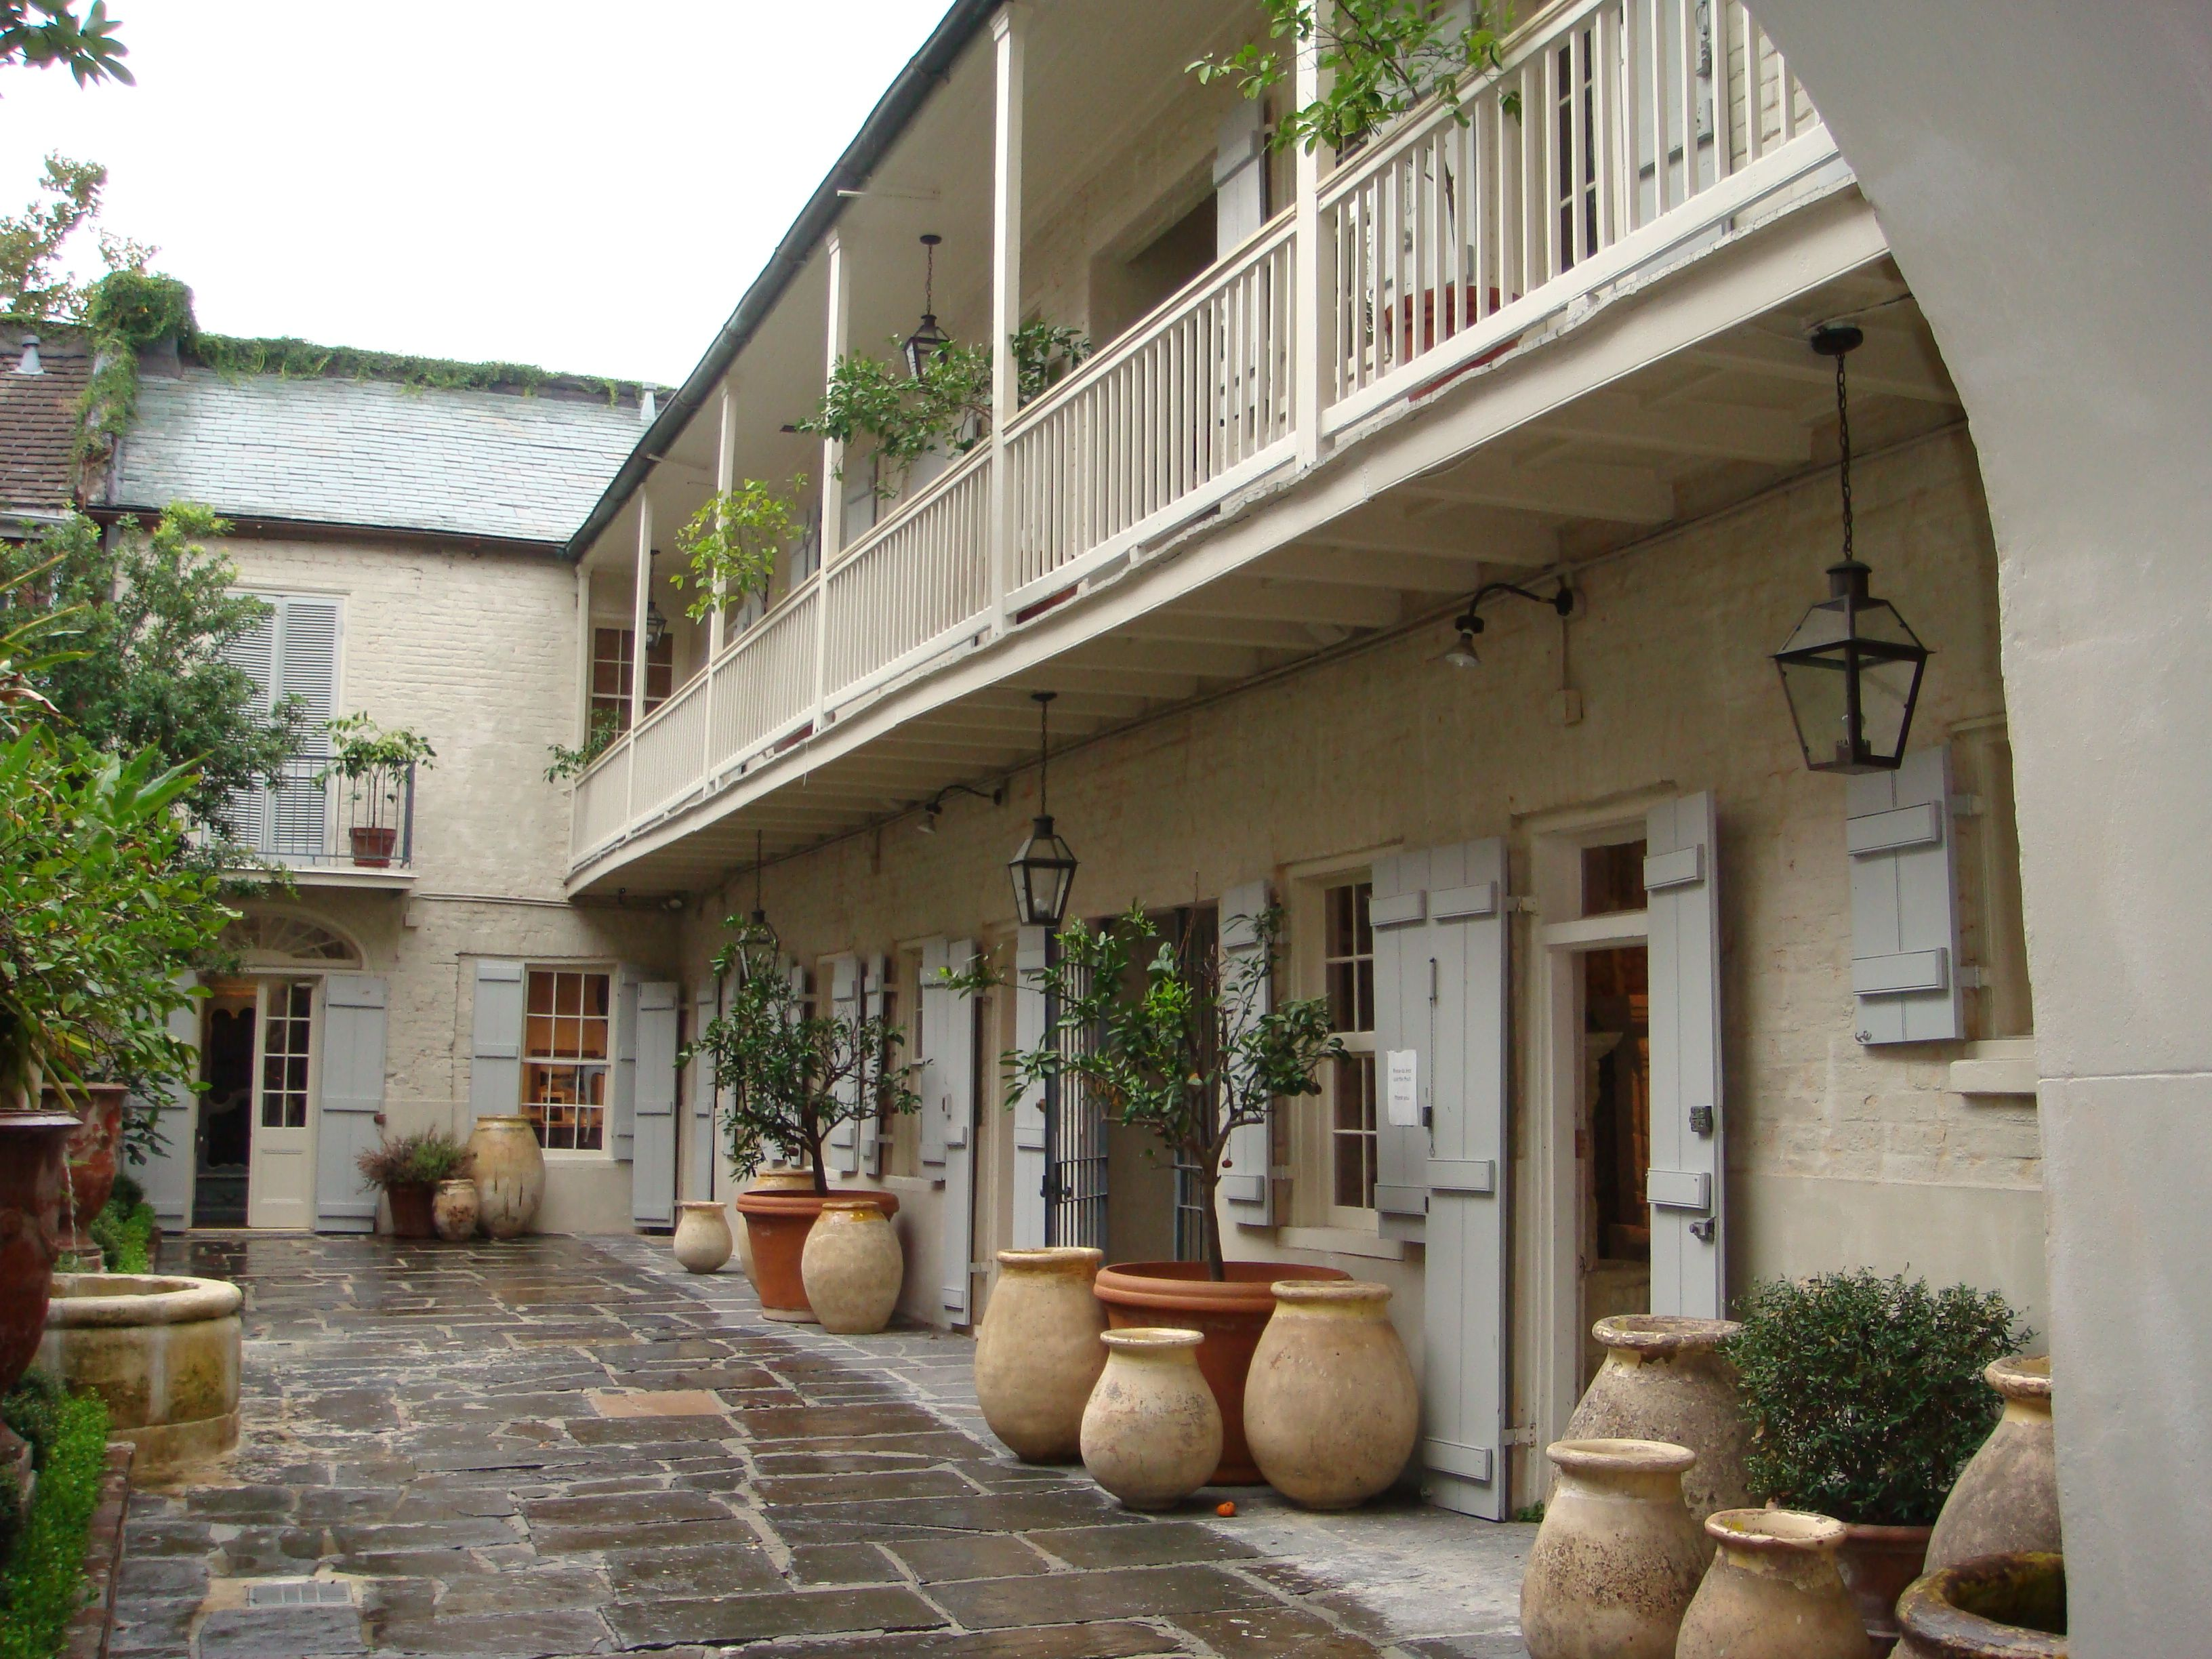 New Orleans courtyard. The yellowish pots are Olive Jars. Hays Town ...